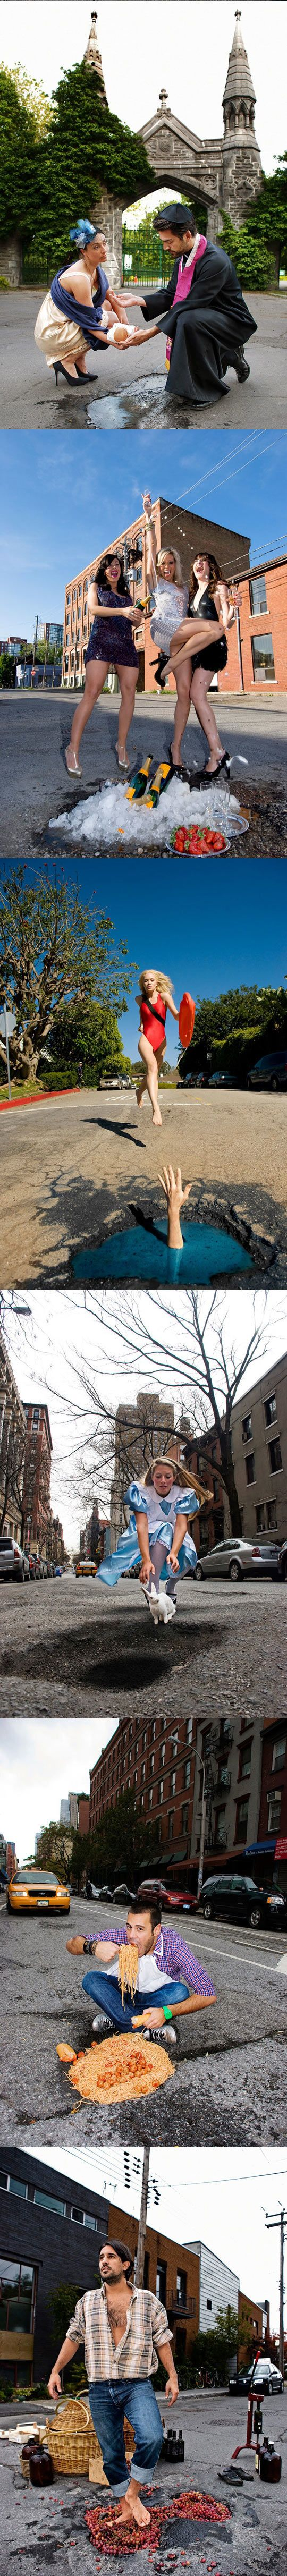 Embracing potholes  // funny pictures - funny photos - funny images - funny pics - funny quotes - #lol #humor #funnypictures